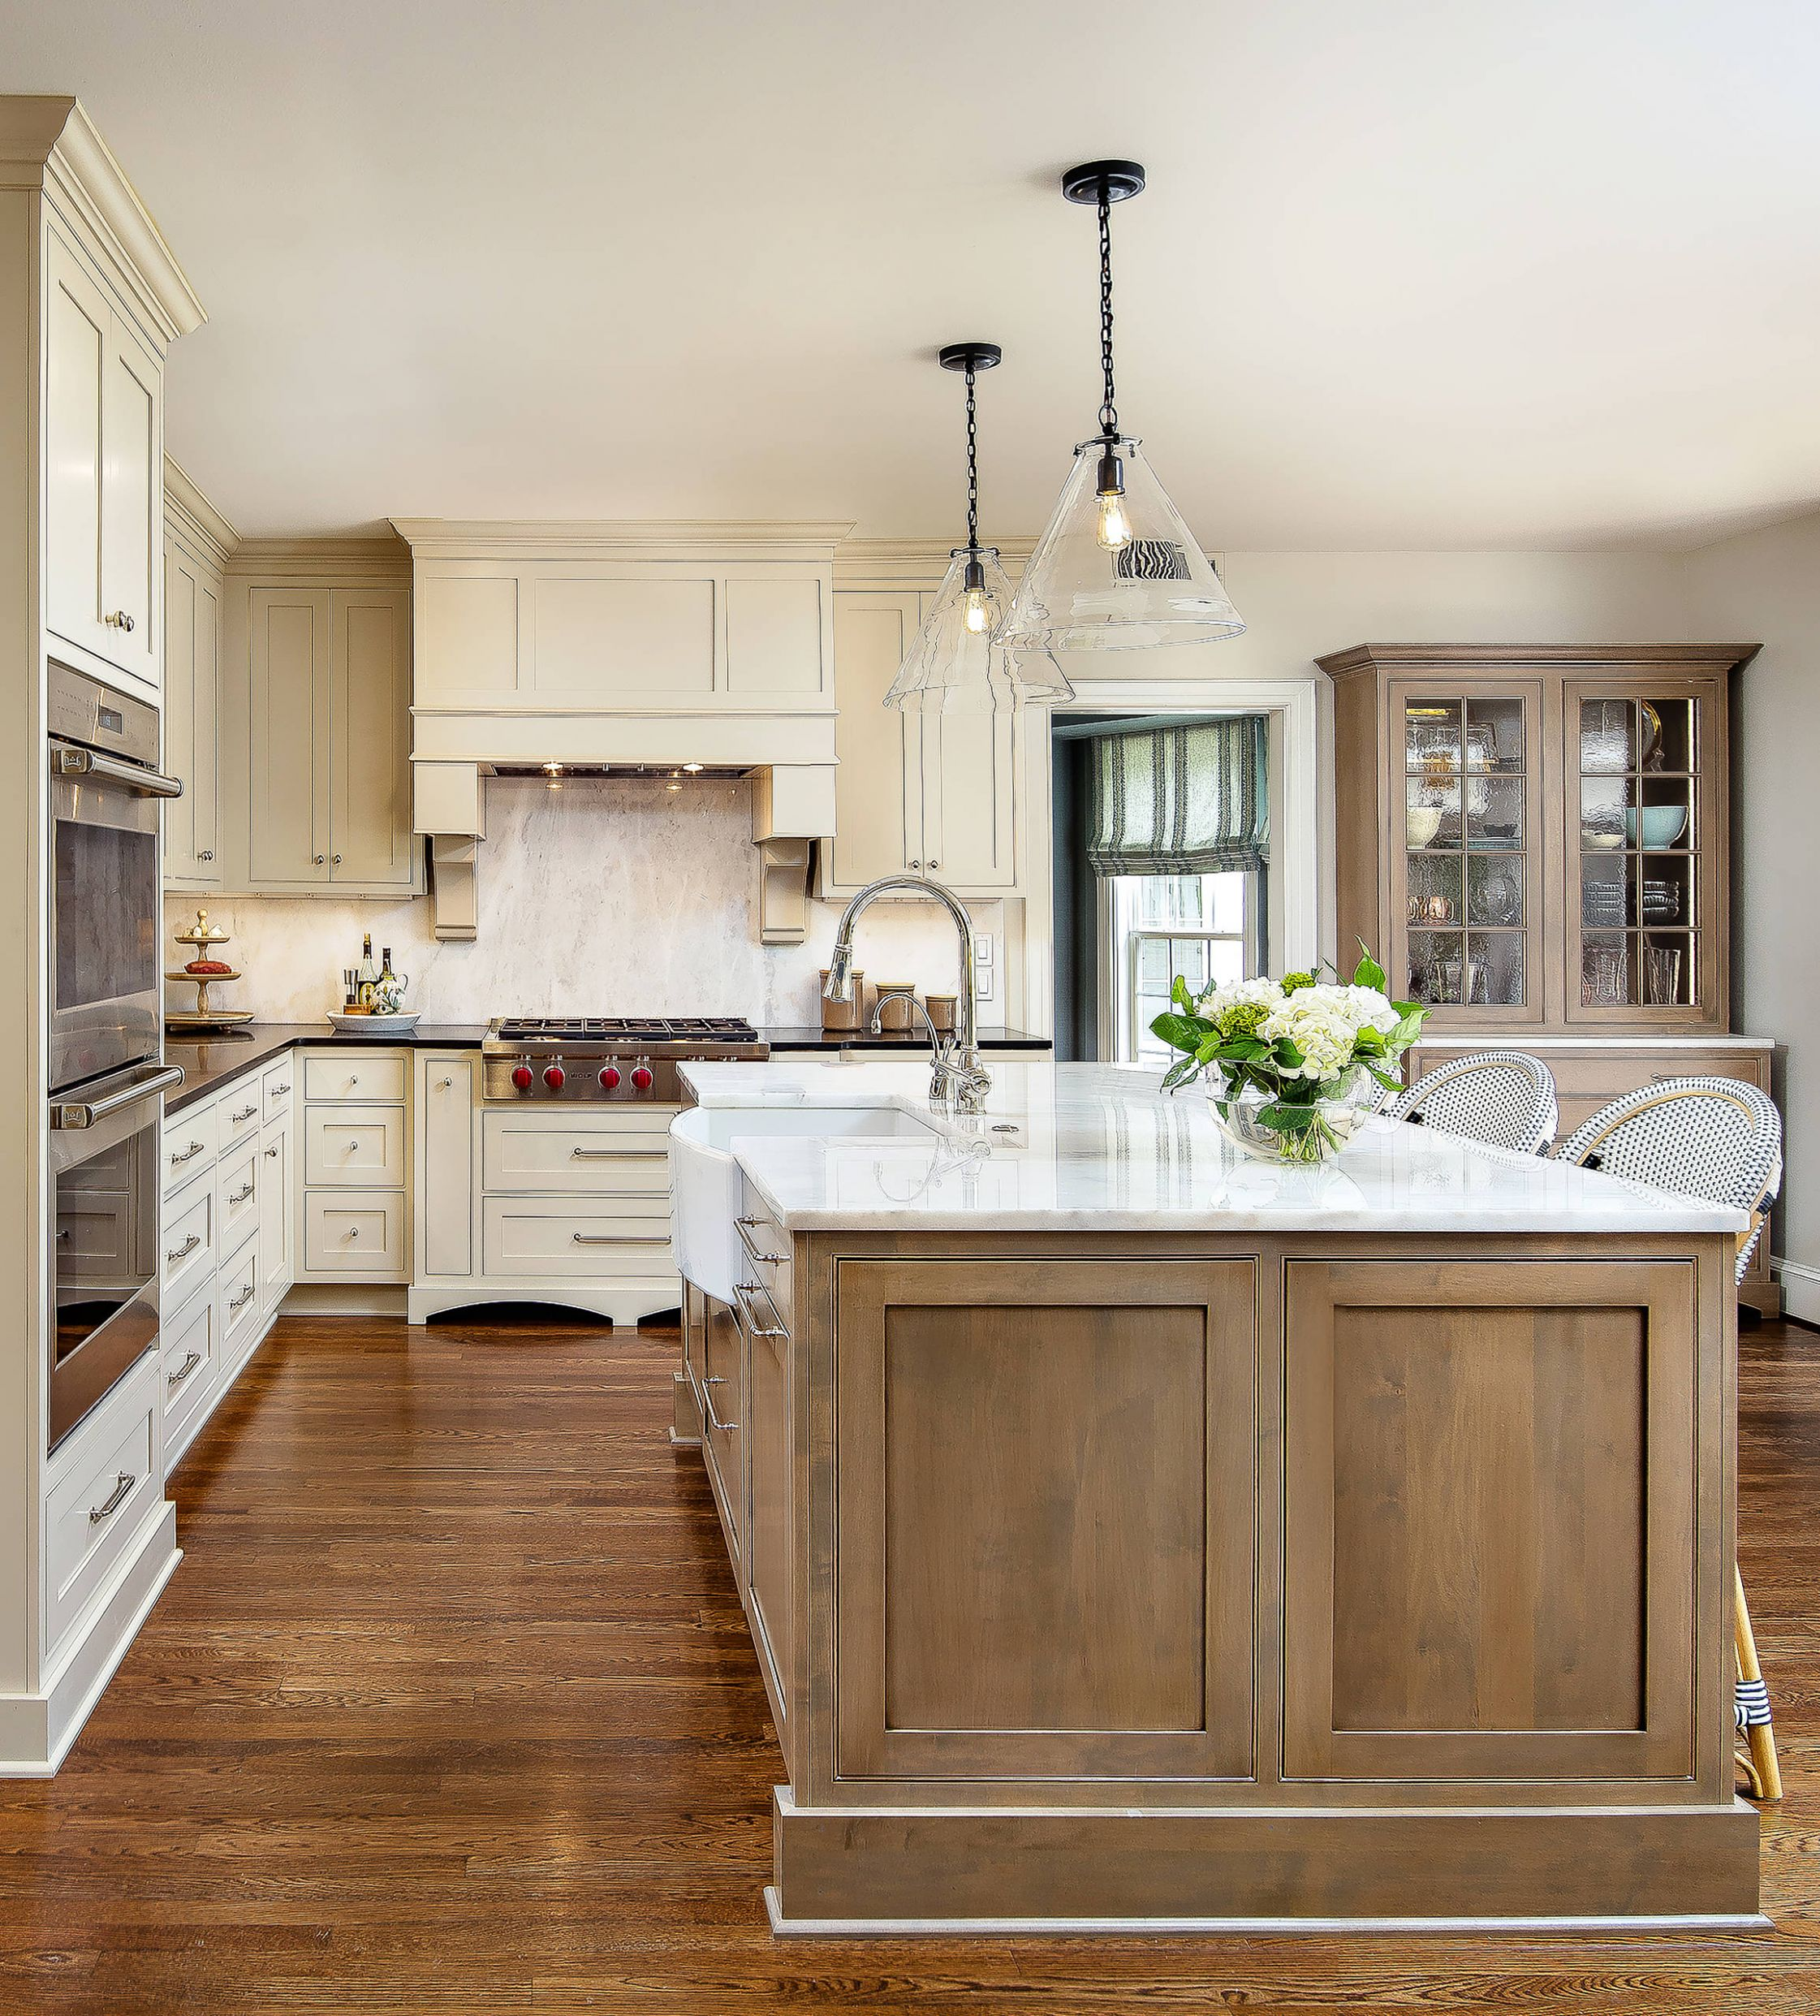 12 BEST Traditional Kitchen Pictures & Ideas | Houzz